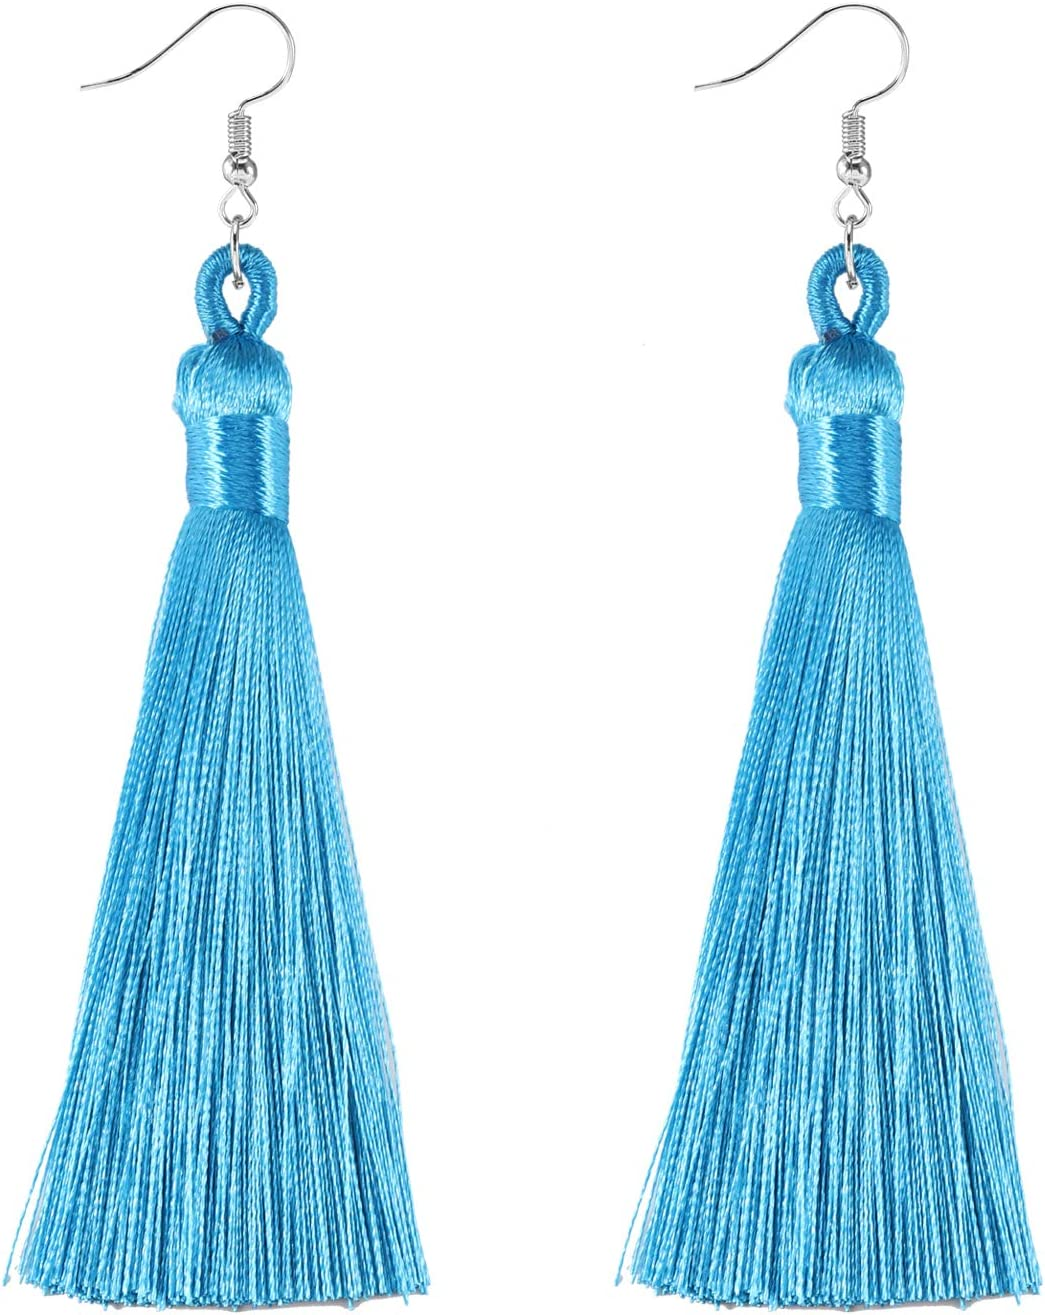 Forise 20pcs Silver Tassels Fashion Silky Elegant Handmade Tassels Fit for DIY Jewelry Making Accessories,90mm